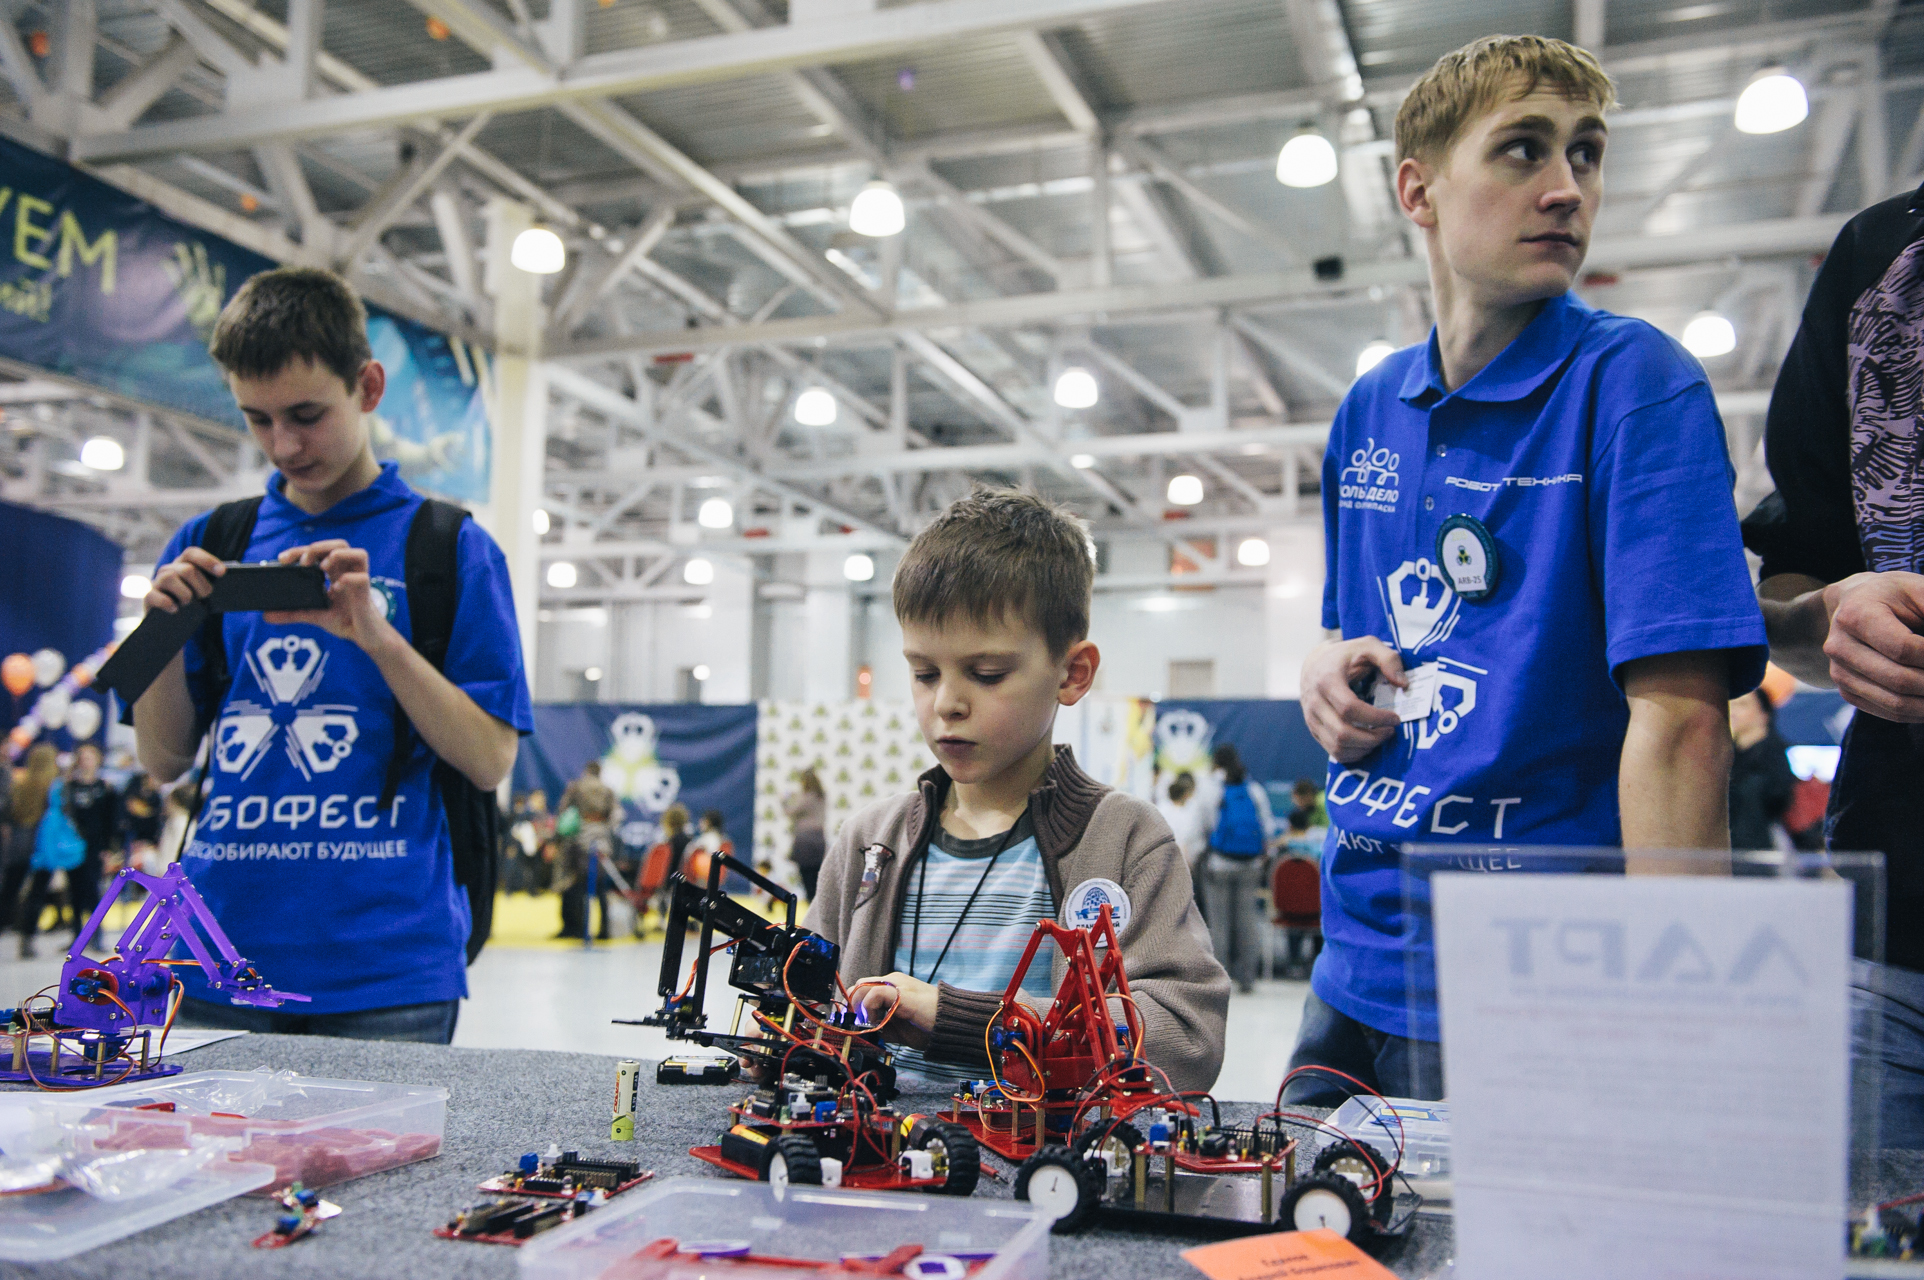 Moscow schoolchildren sweep RoboFest competition